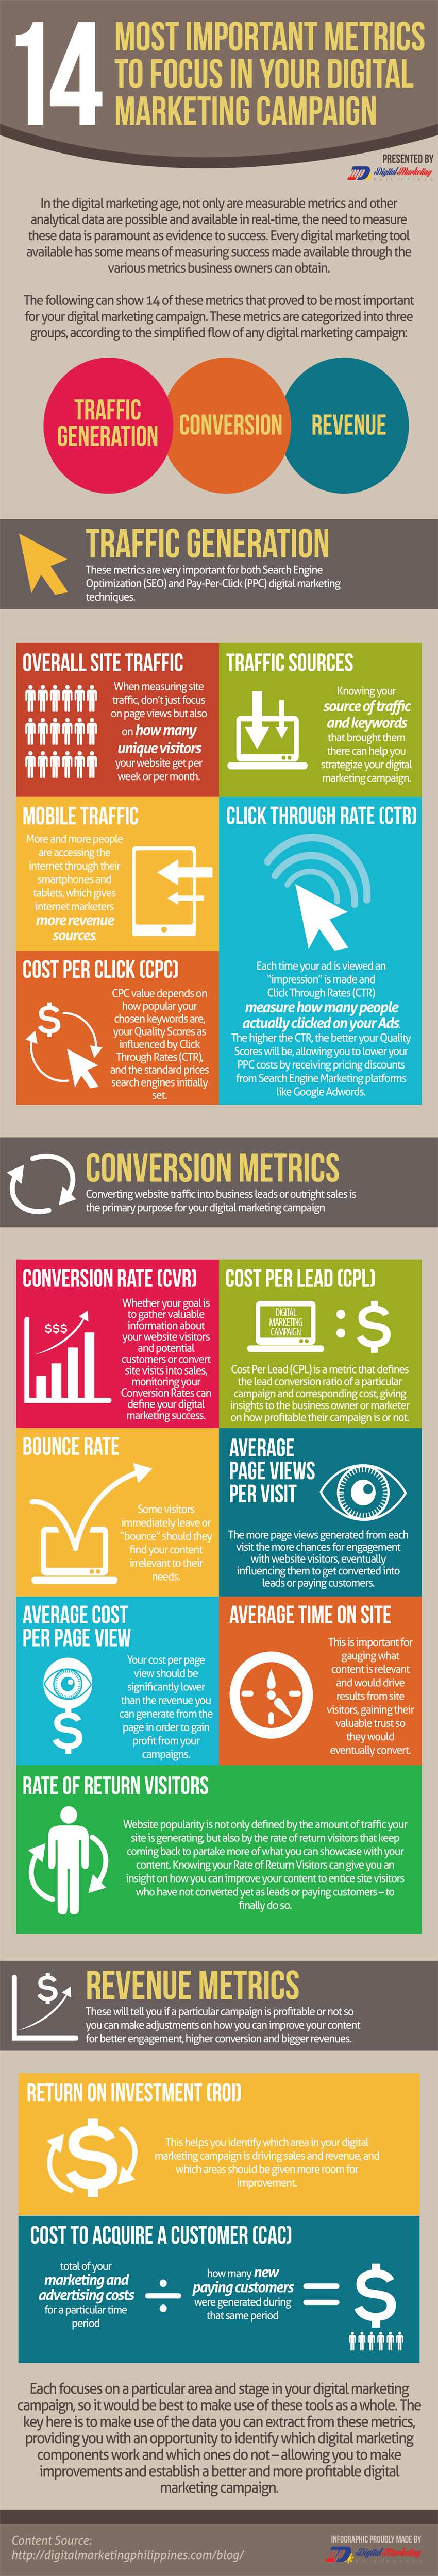 14 Most Important Metrics to Focus in Your Digital Marketing Campaign (Infographic) - An Infographic from Digital Marketing Philippines